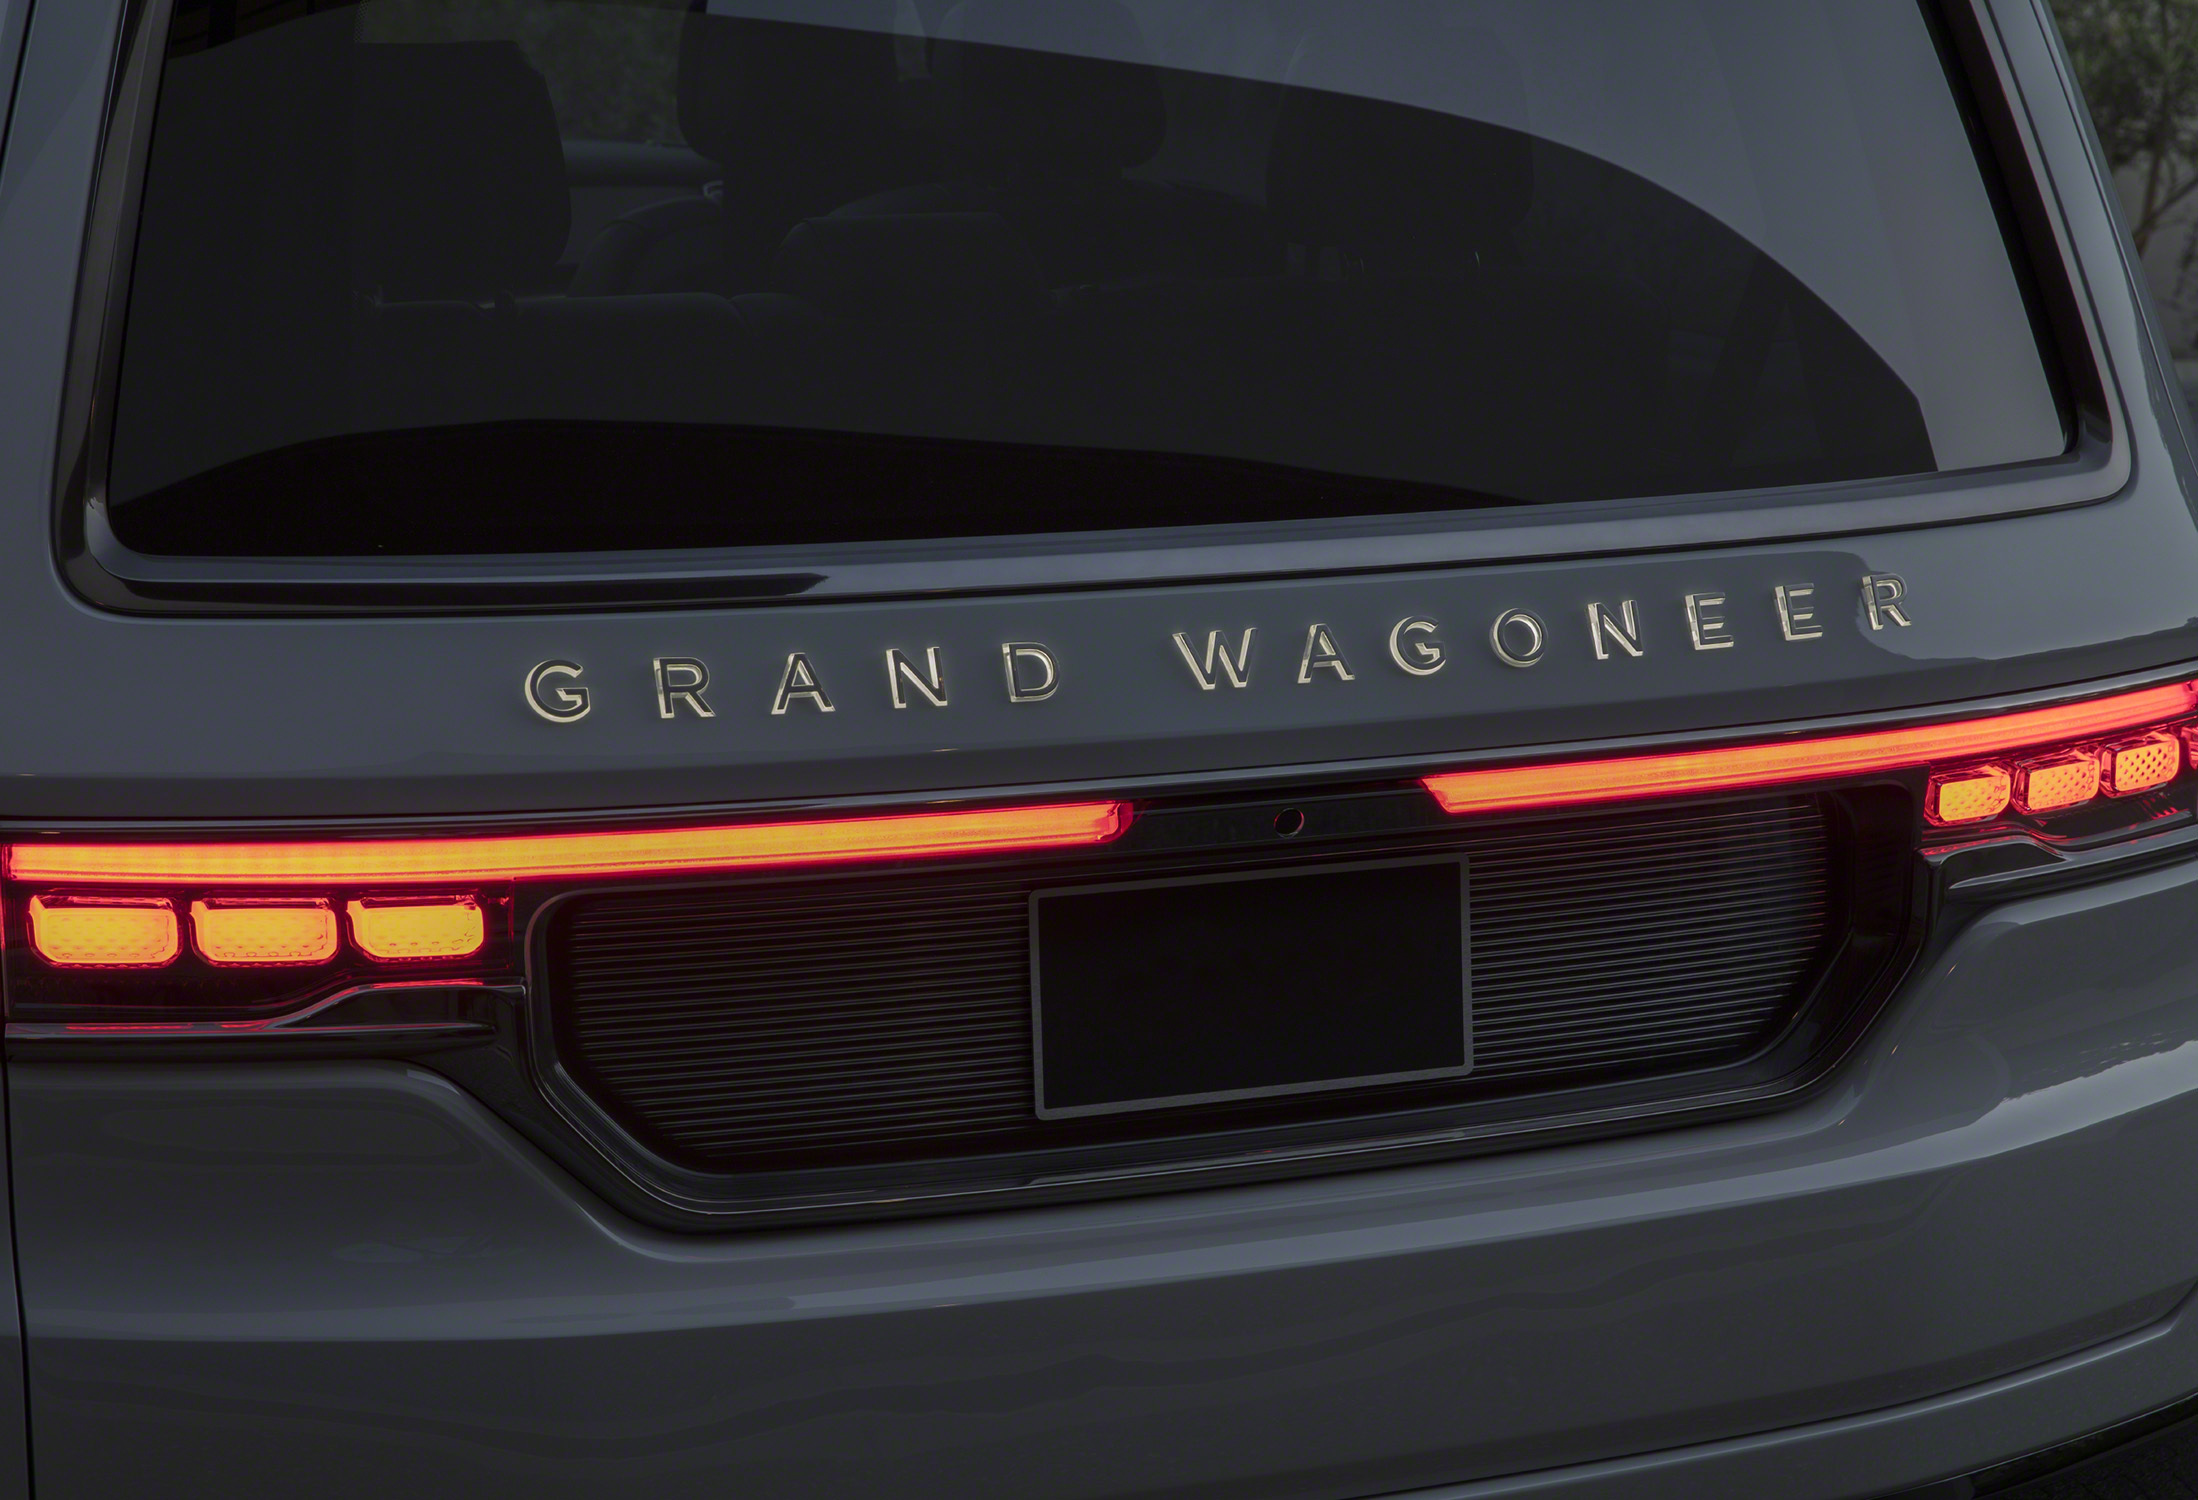 Grand Wagoneer Concept illuminated rear badges